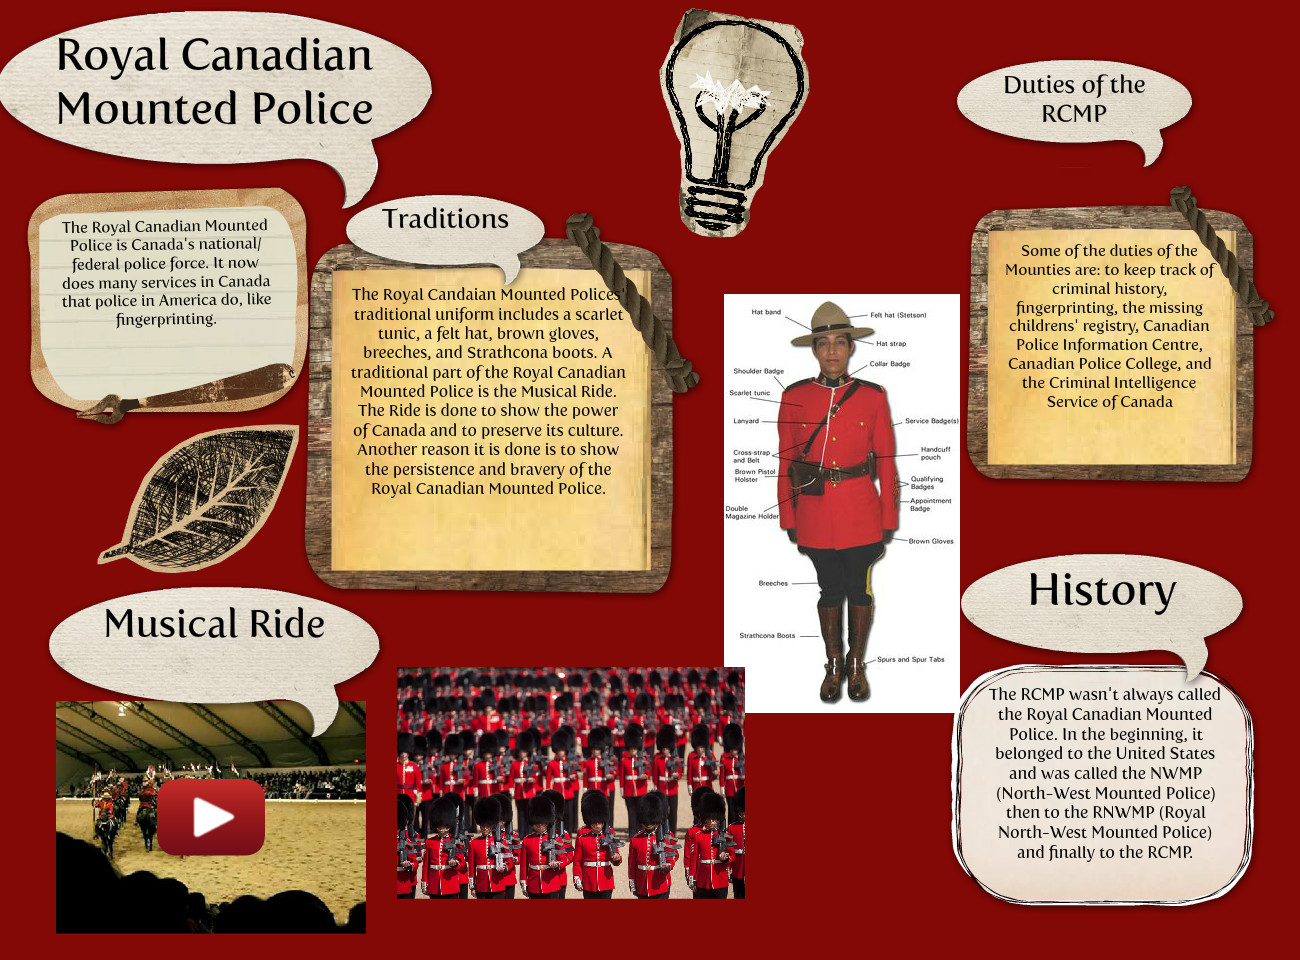 The Royal Canadian Mounted Police